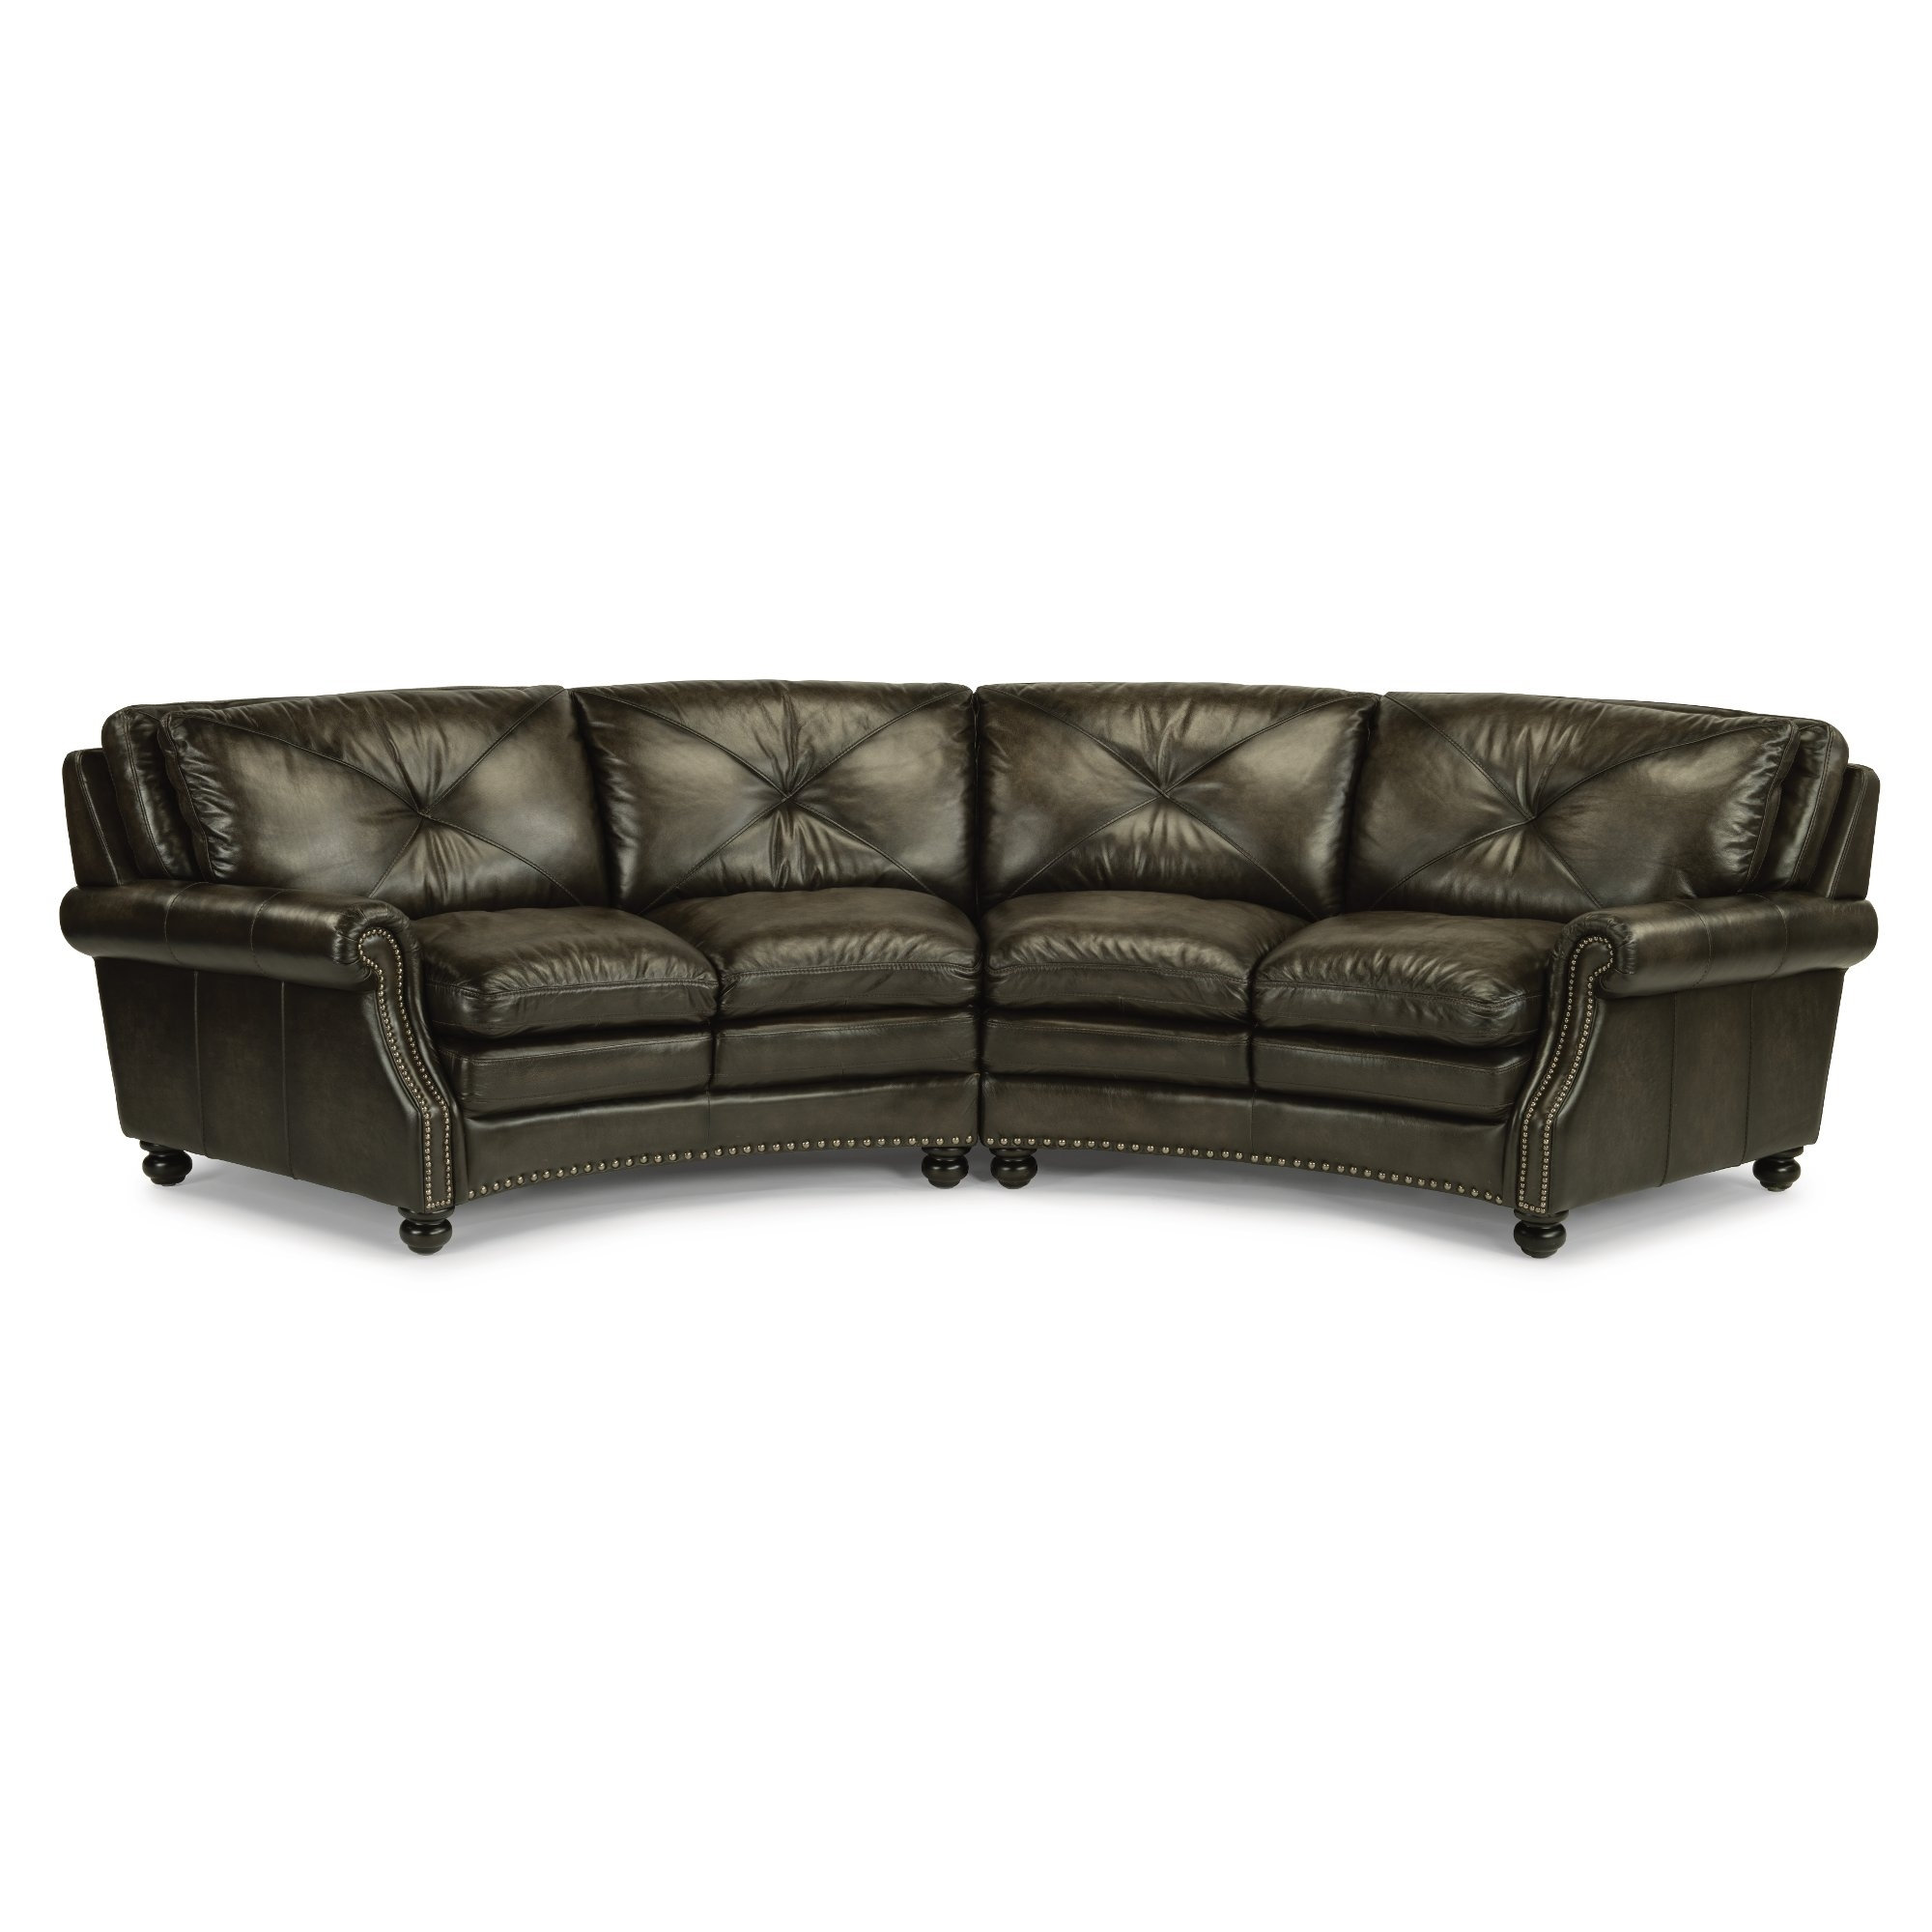 Sectional Sofa Dark Grey | Baci Living Room With Regard To Tatum Dark Grey 2 Piece Sectionals With Laf Chaise (Image 15 of 25)